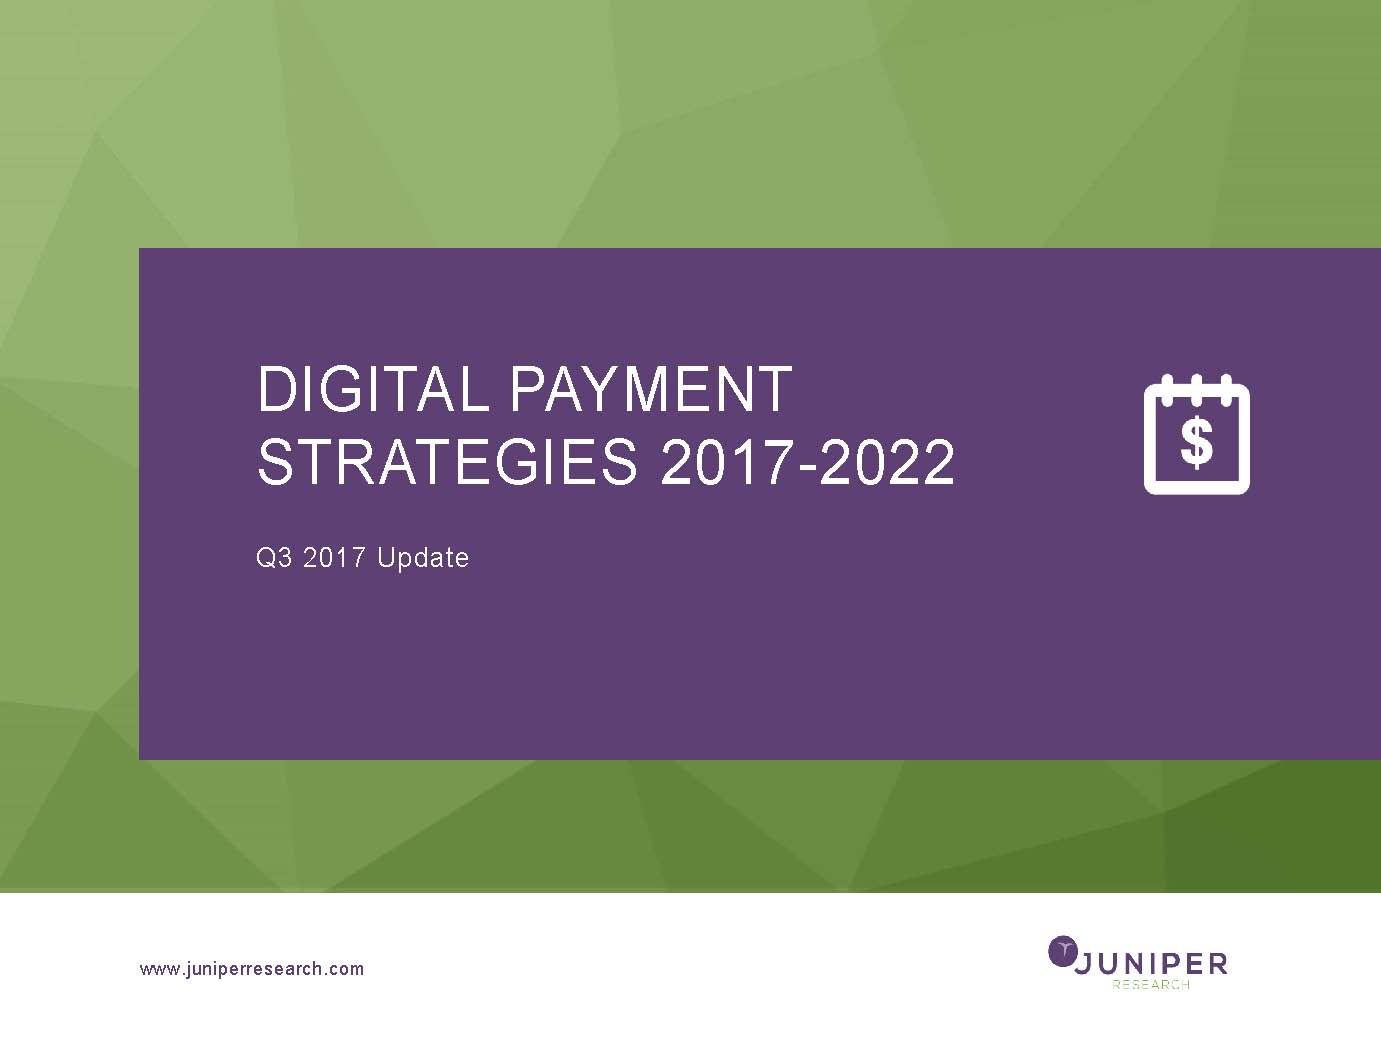 Digital Payment Strategies - Q3 2017